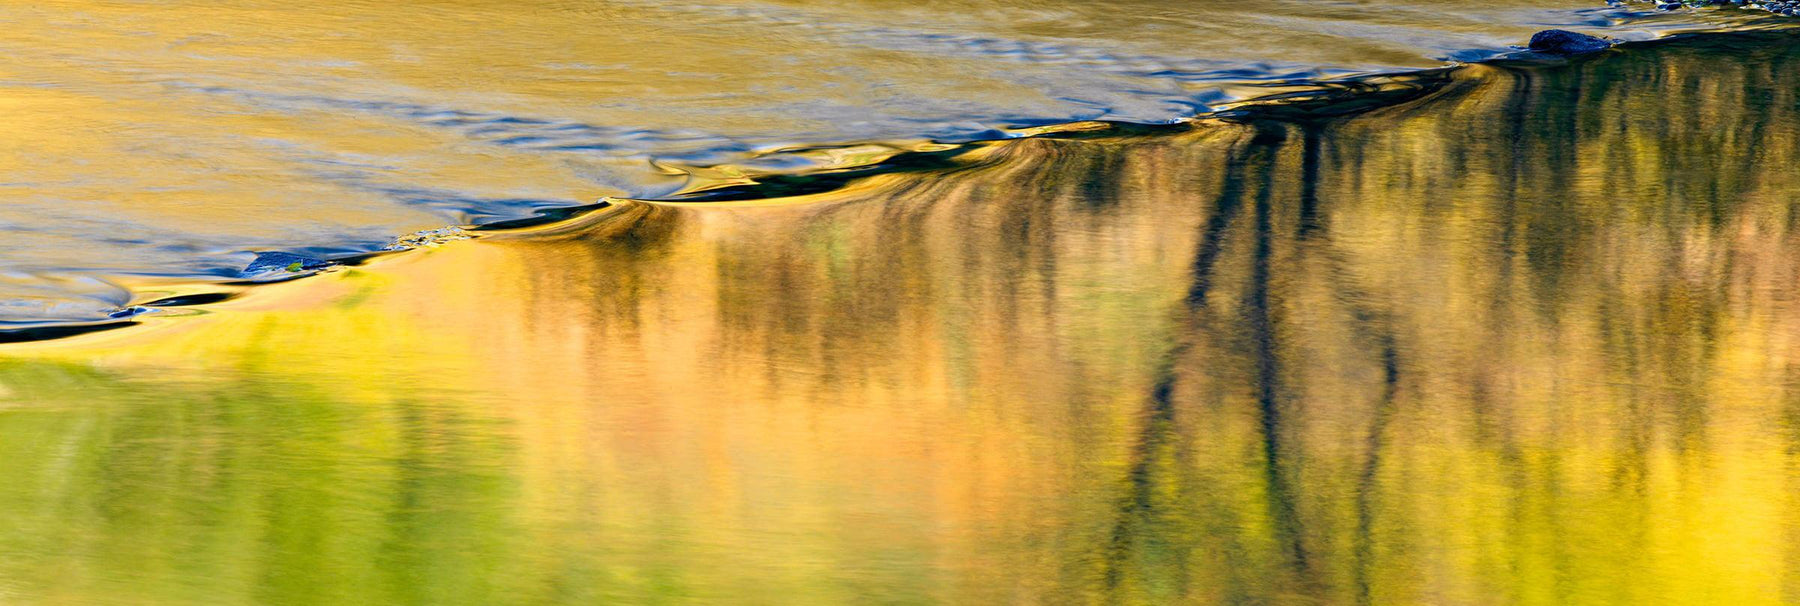 Close up of a calm river rolling over rocks reflecting the yellow Autumn colors of the Colorado forest